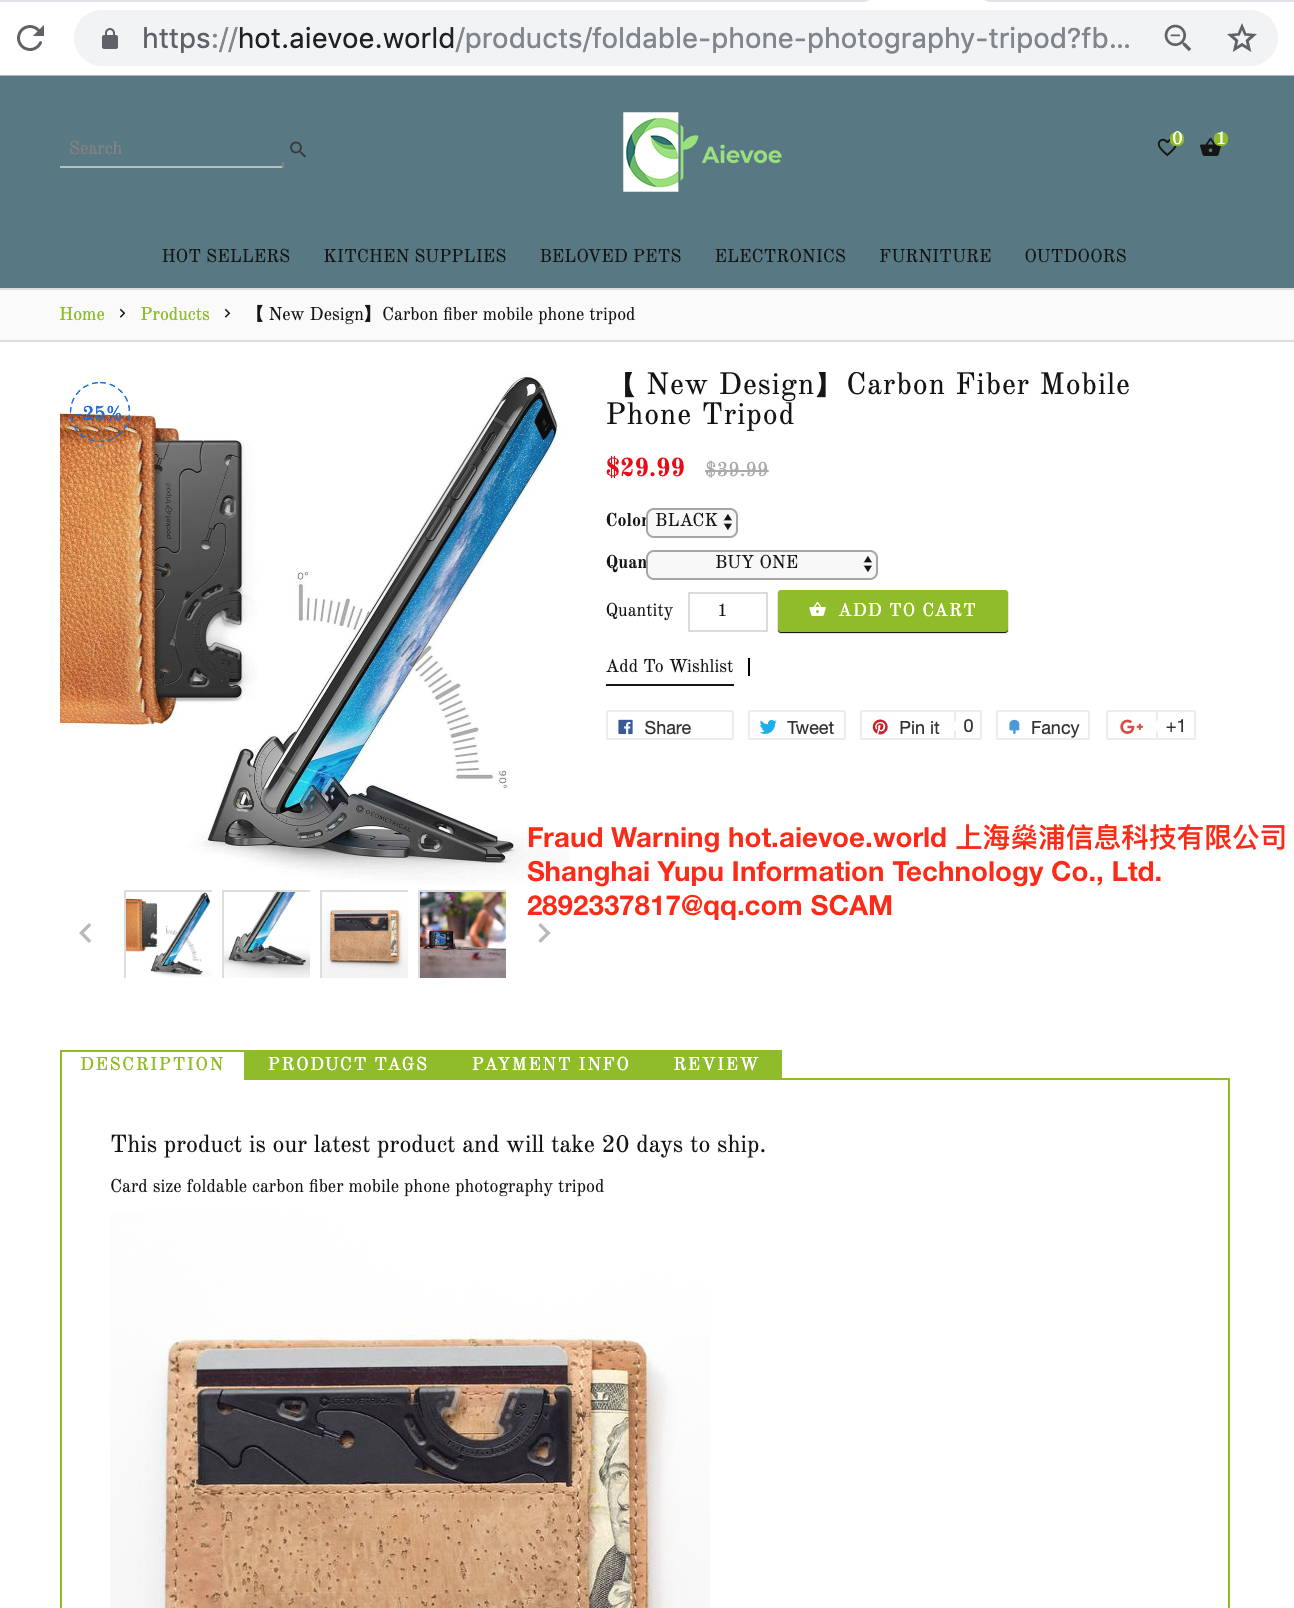 Fraud Warning hot.aievoe.world 上海燊浦信息科技有限公司 Shanghai Yupu Information Technology Co., Ltd. 2892337817@qq.com SCAM